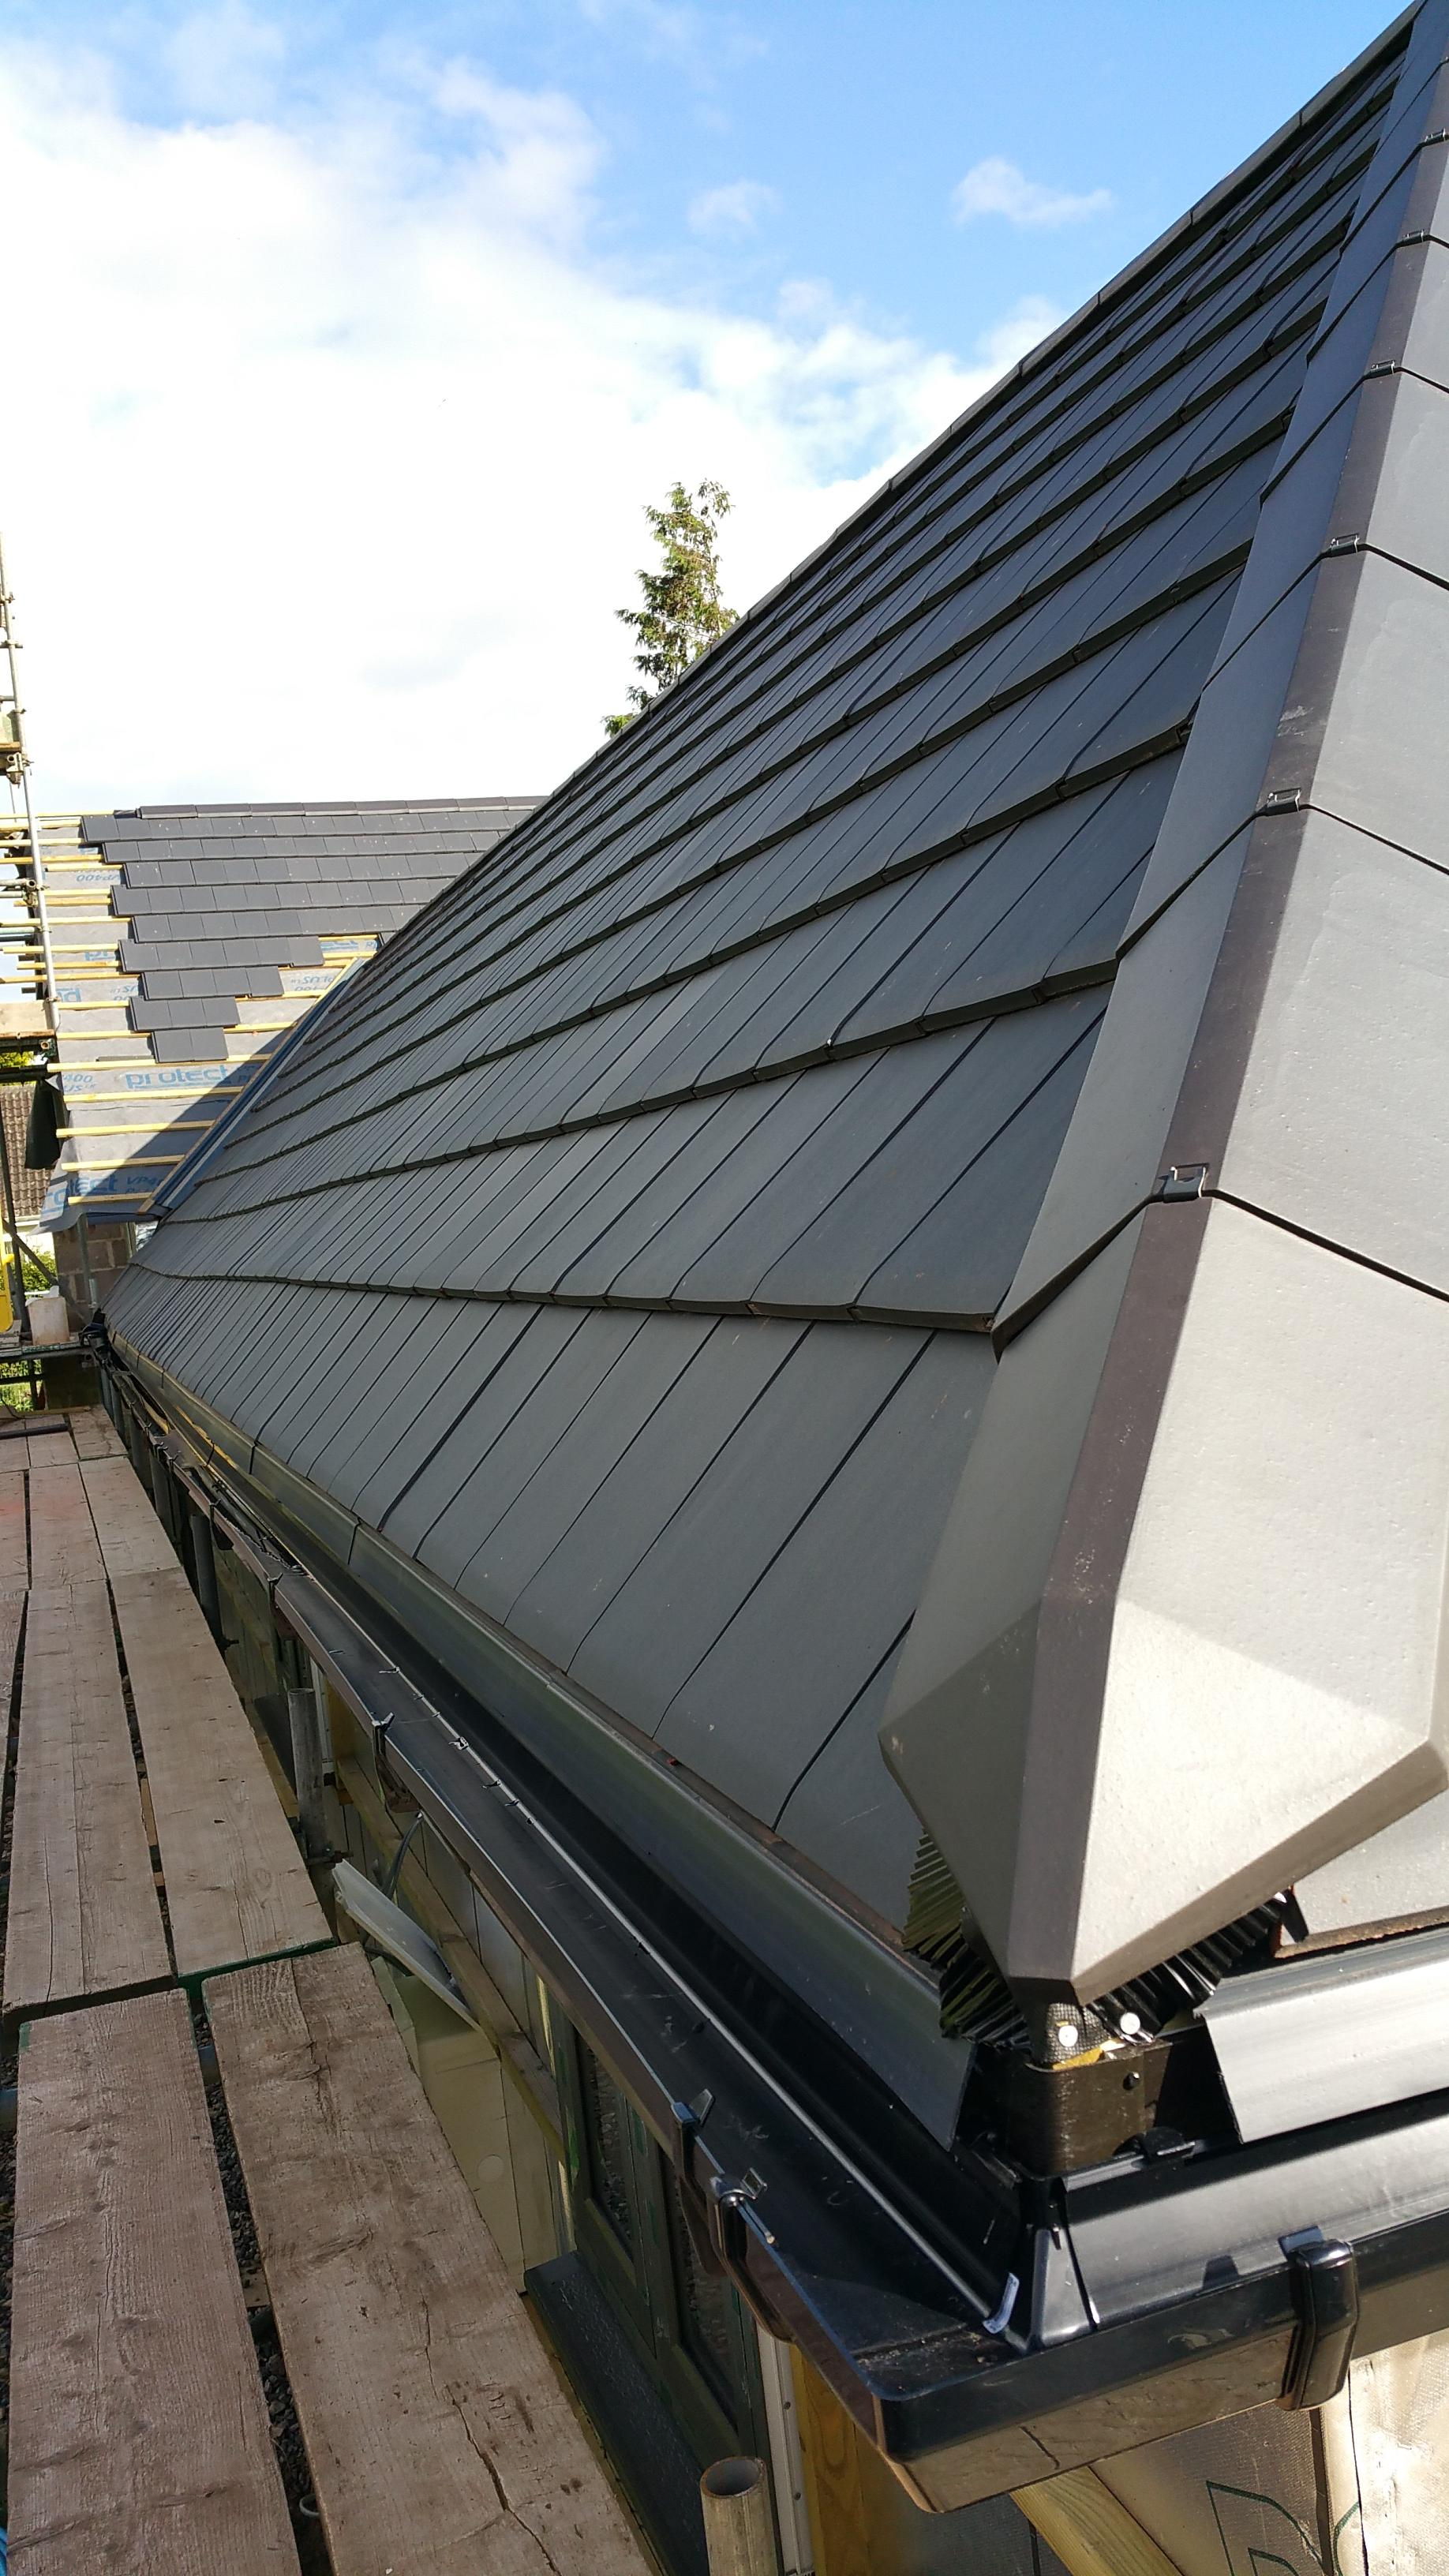 Verea slate clay tiles, CS PL2 vented ridge tiles